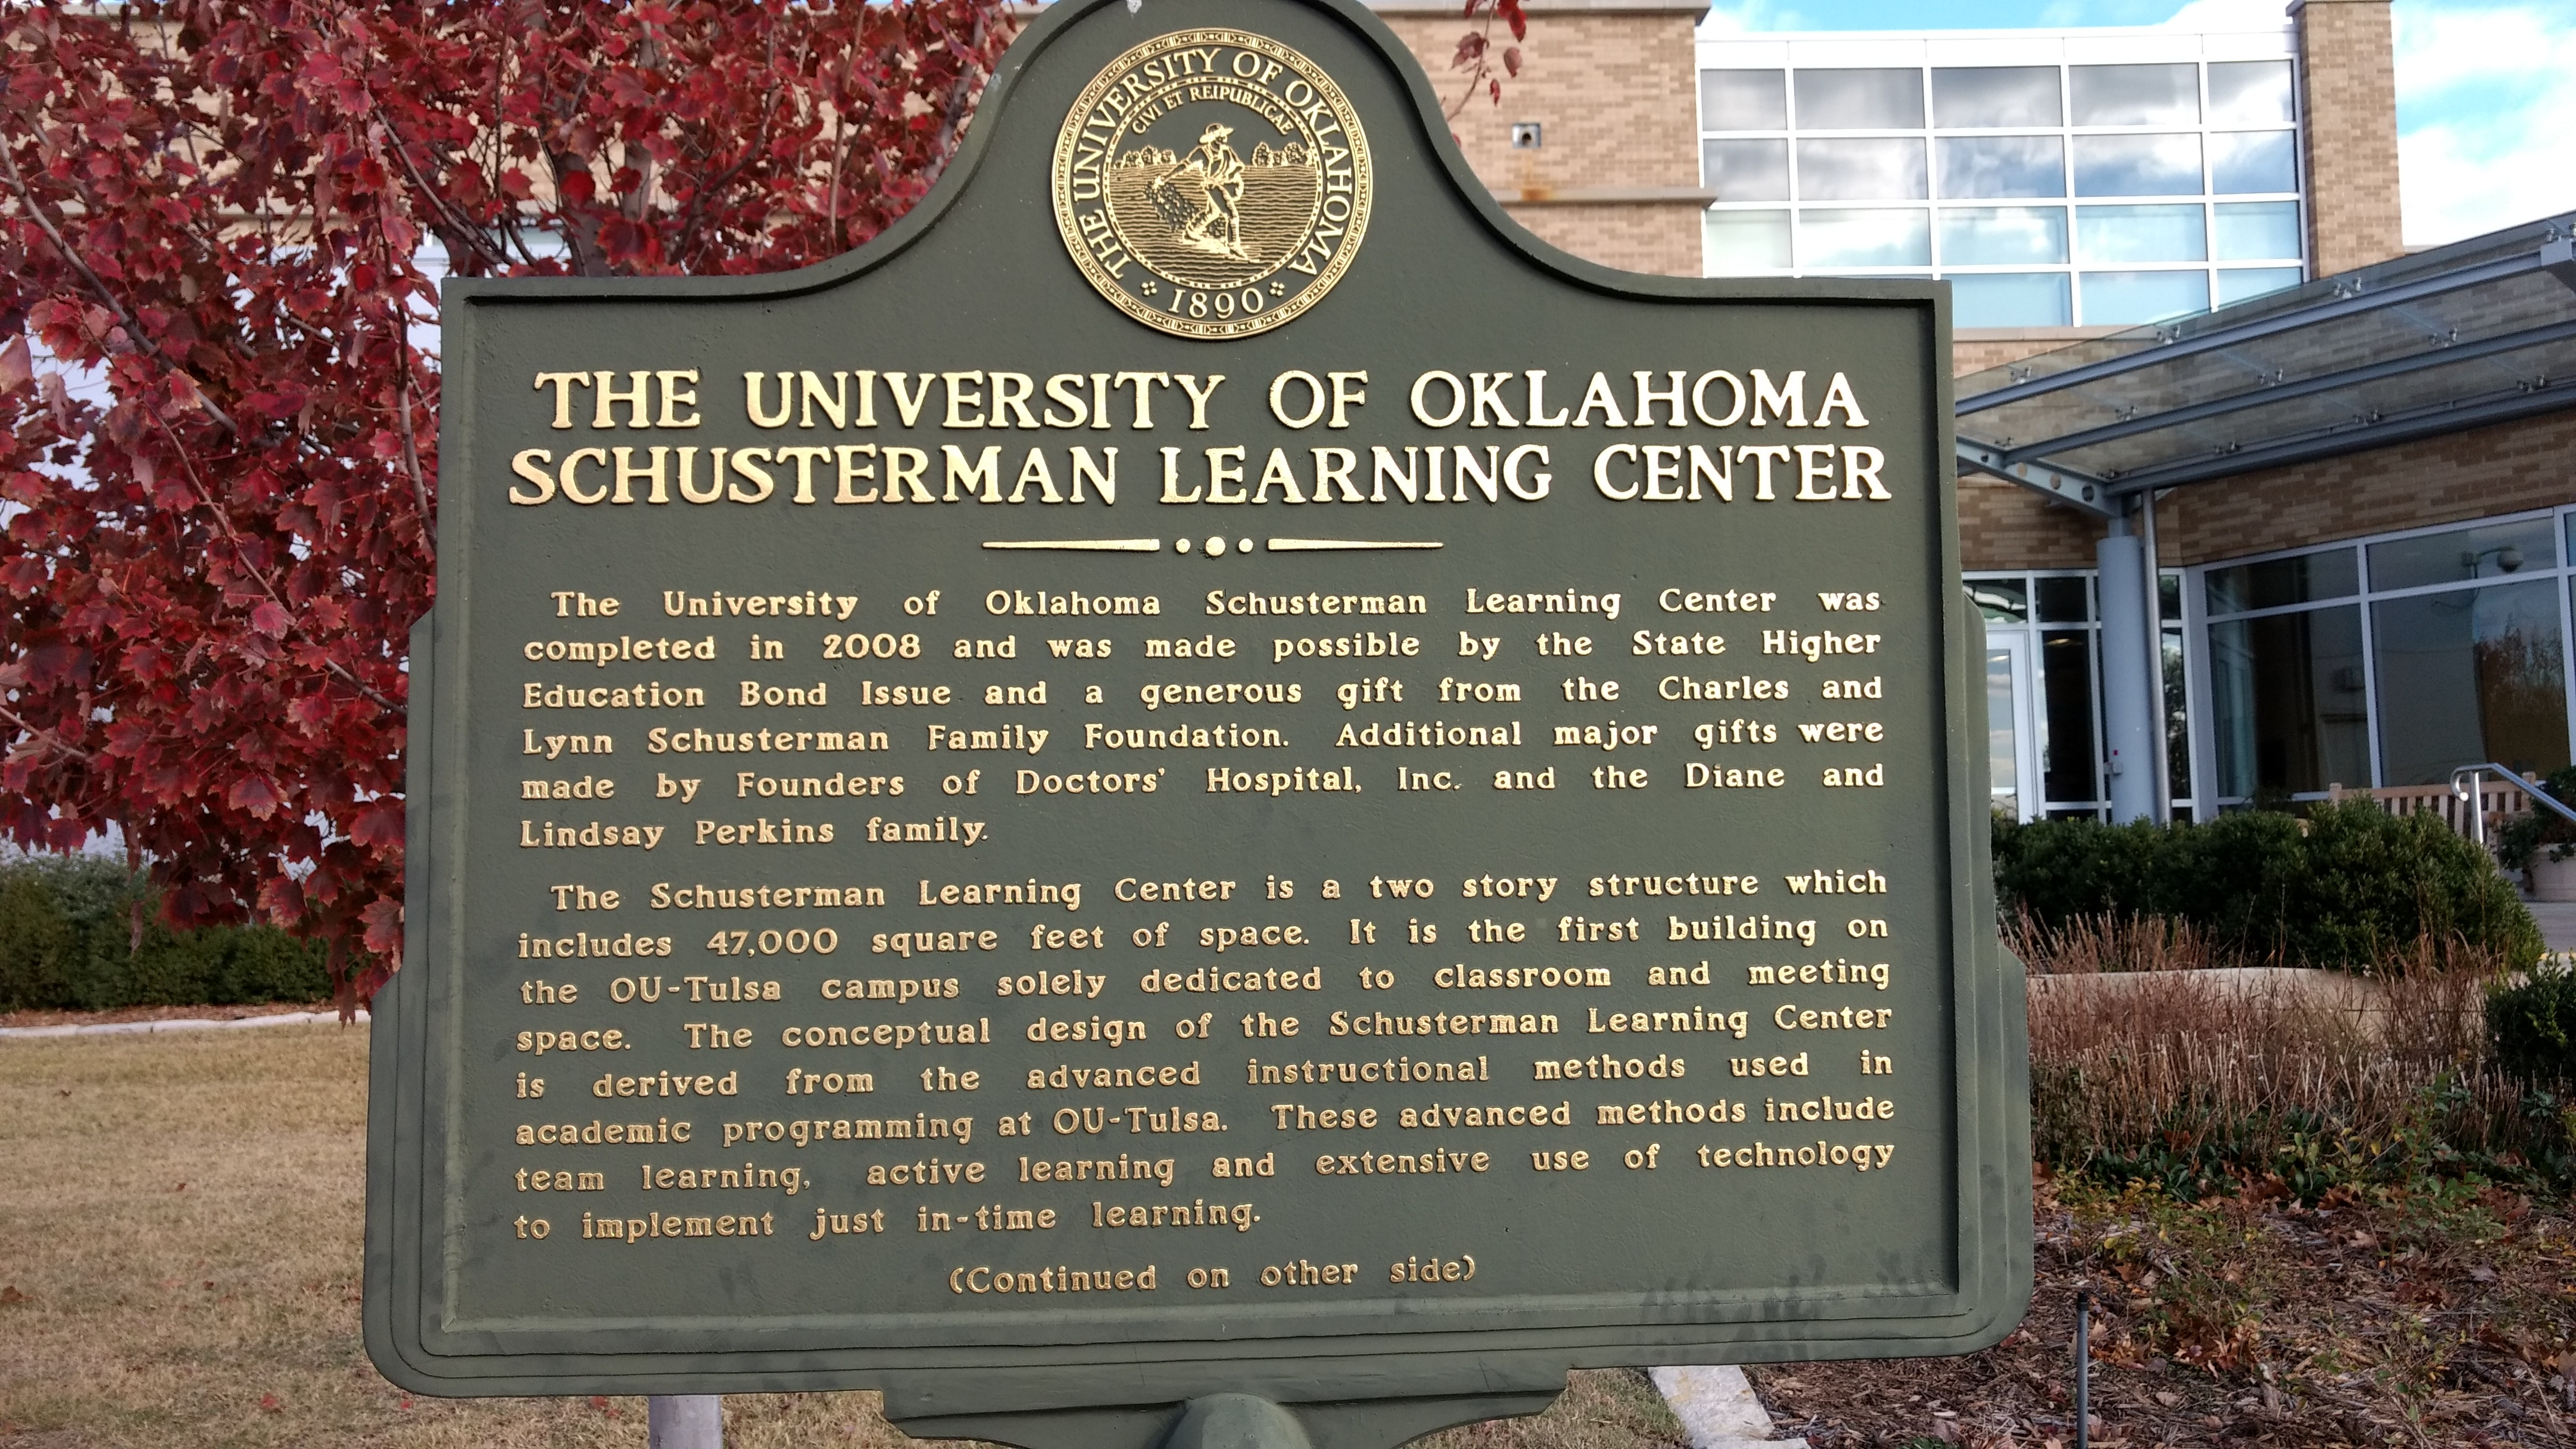 The University of Oklahoma Schusterman Learning Center Marker